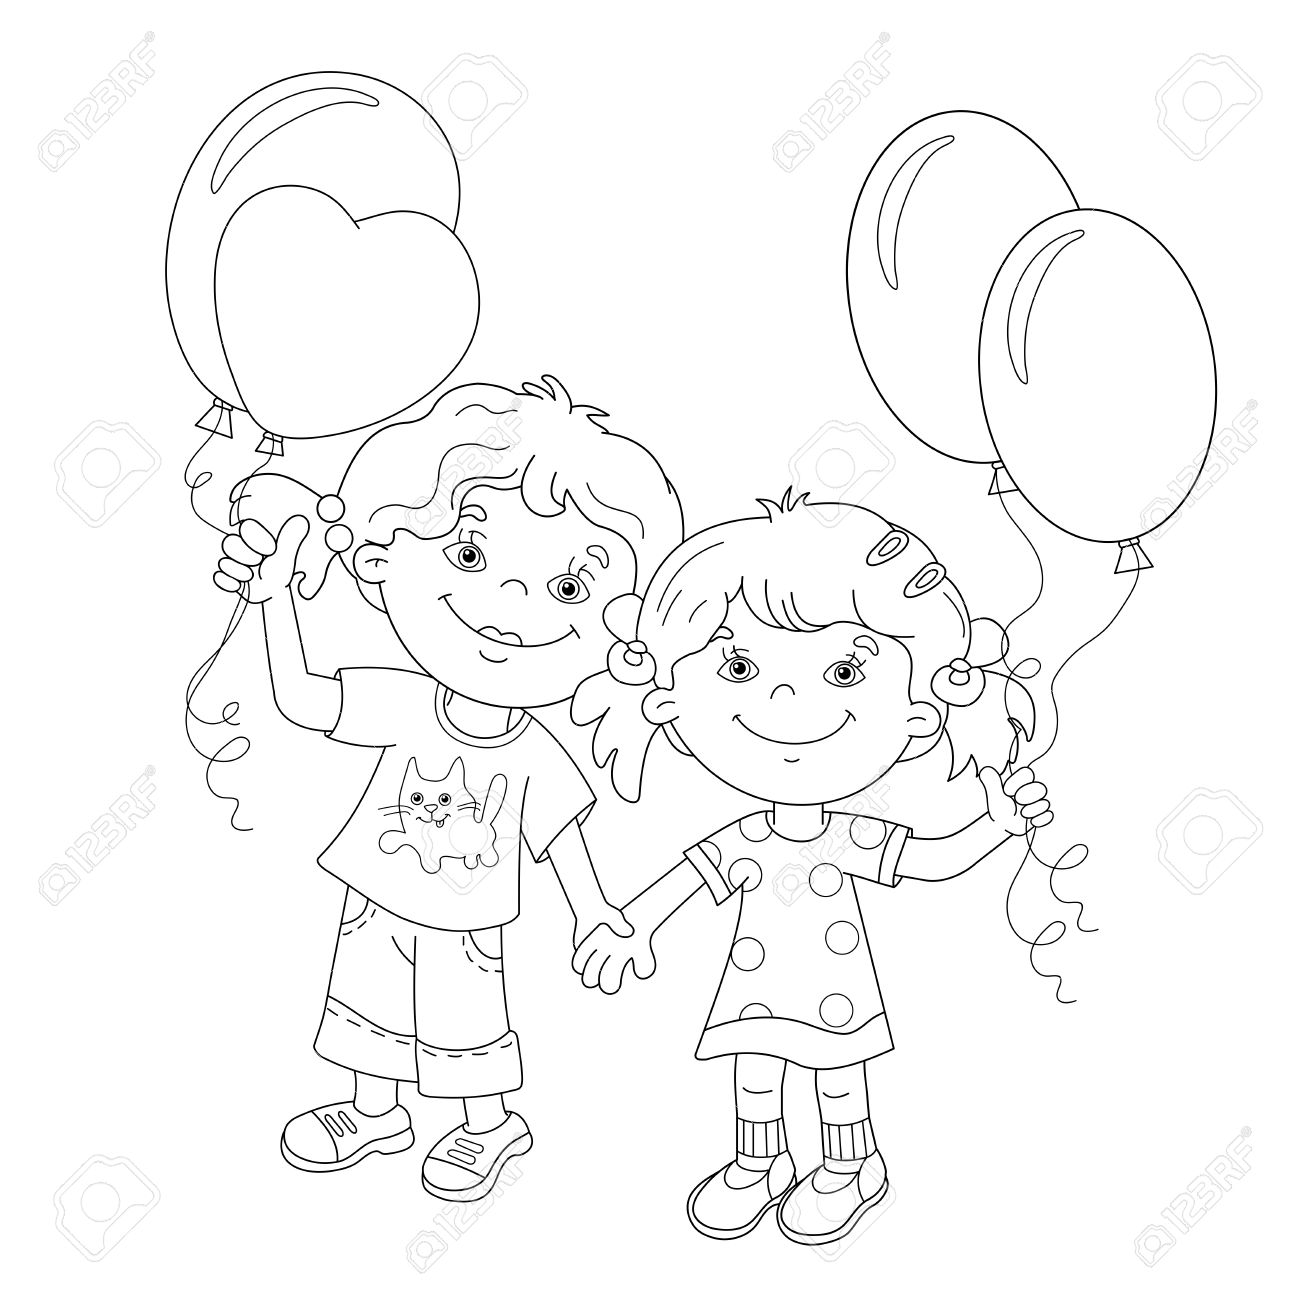 coloring page outline of cartoon girls holding hands with balloons coloring book for kids stock